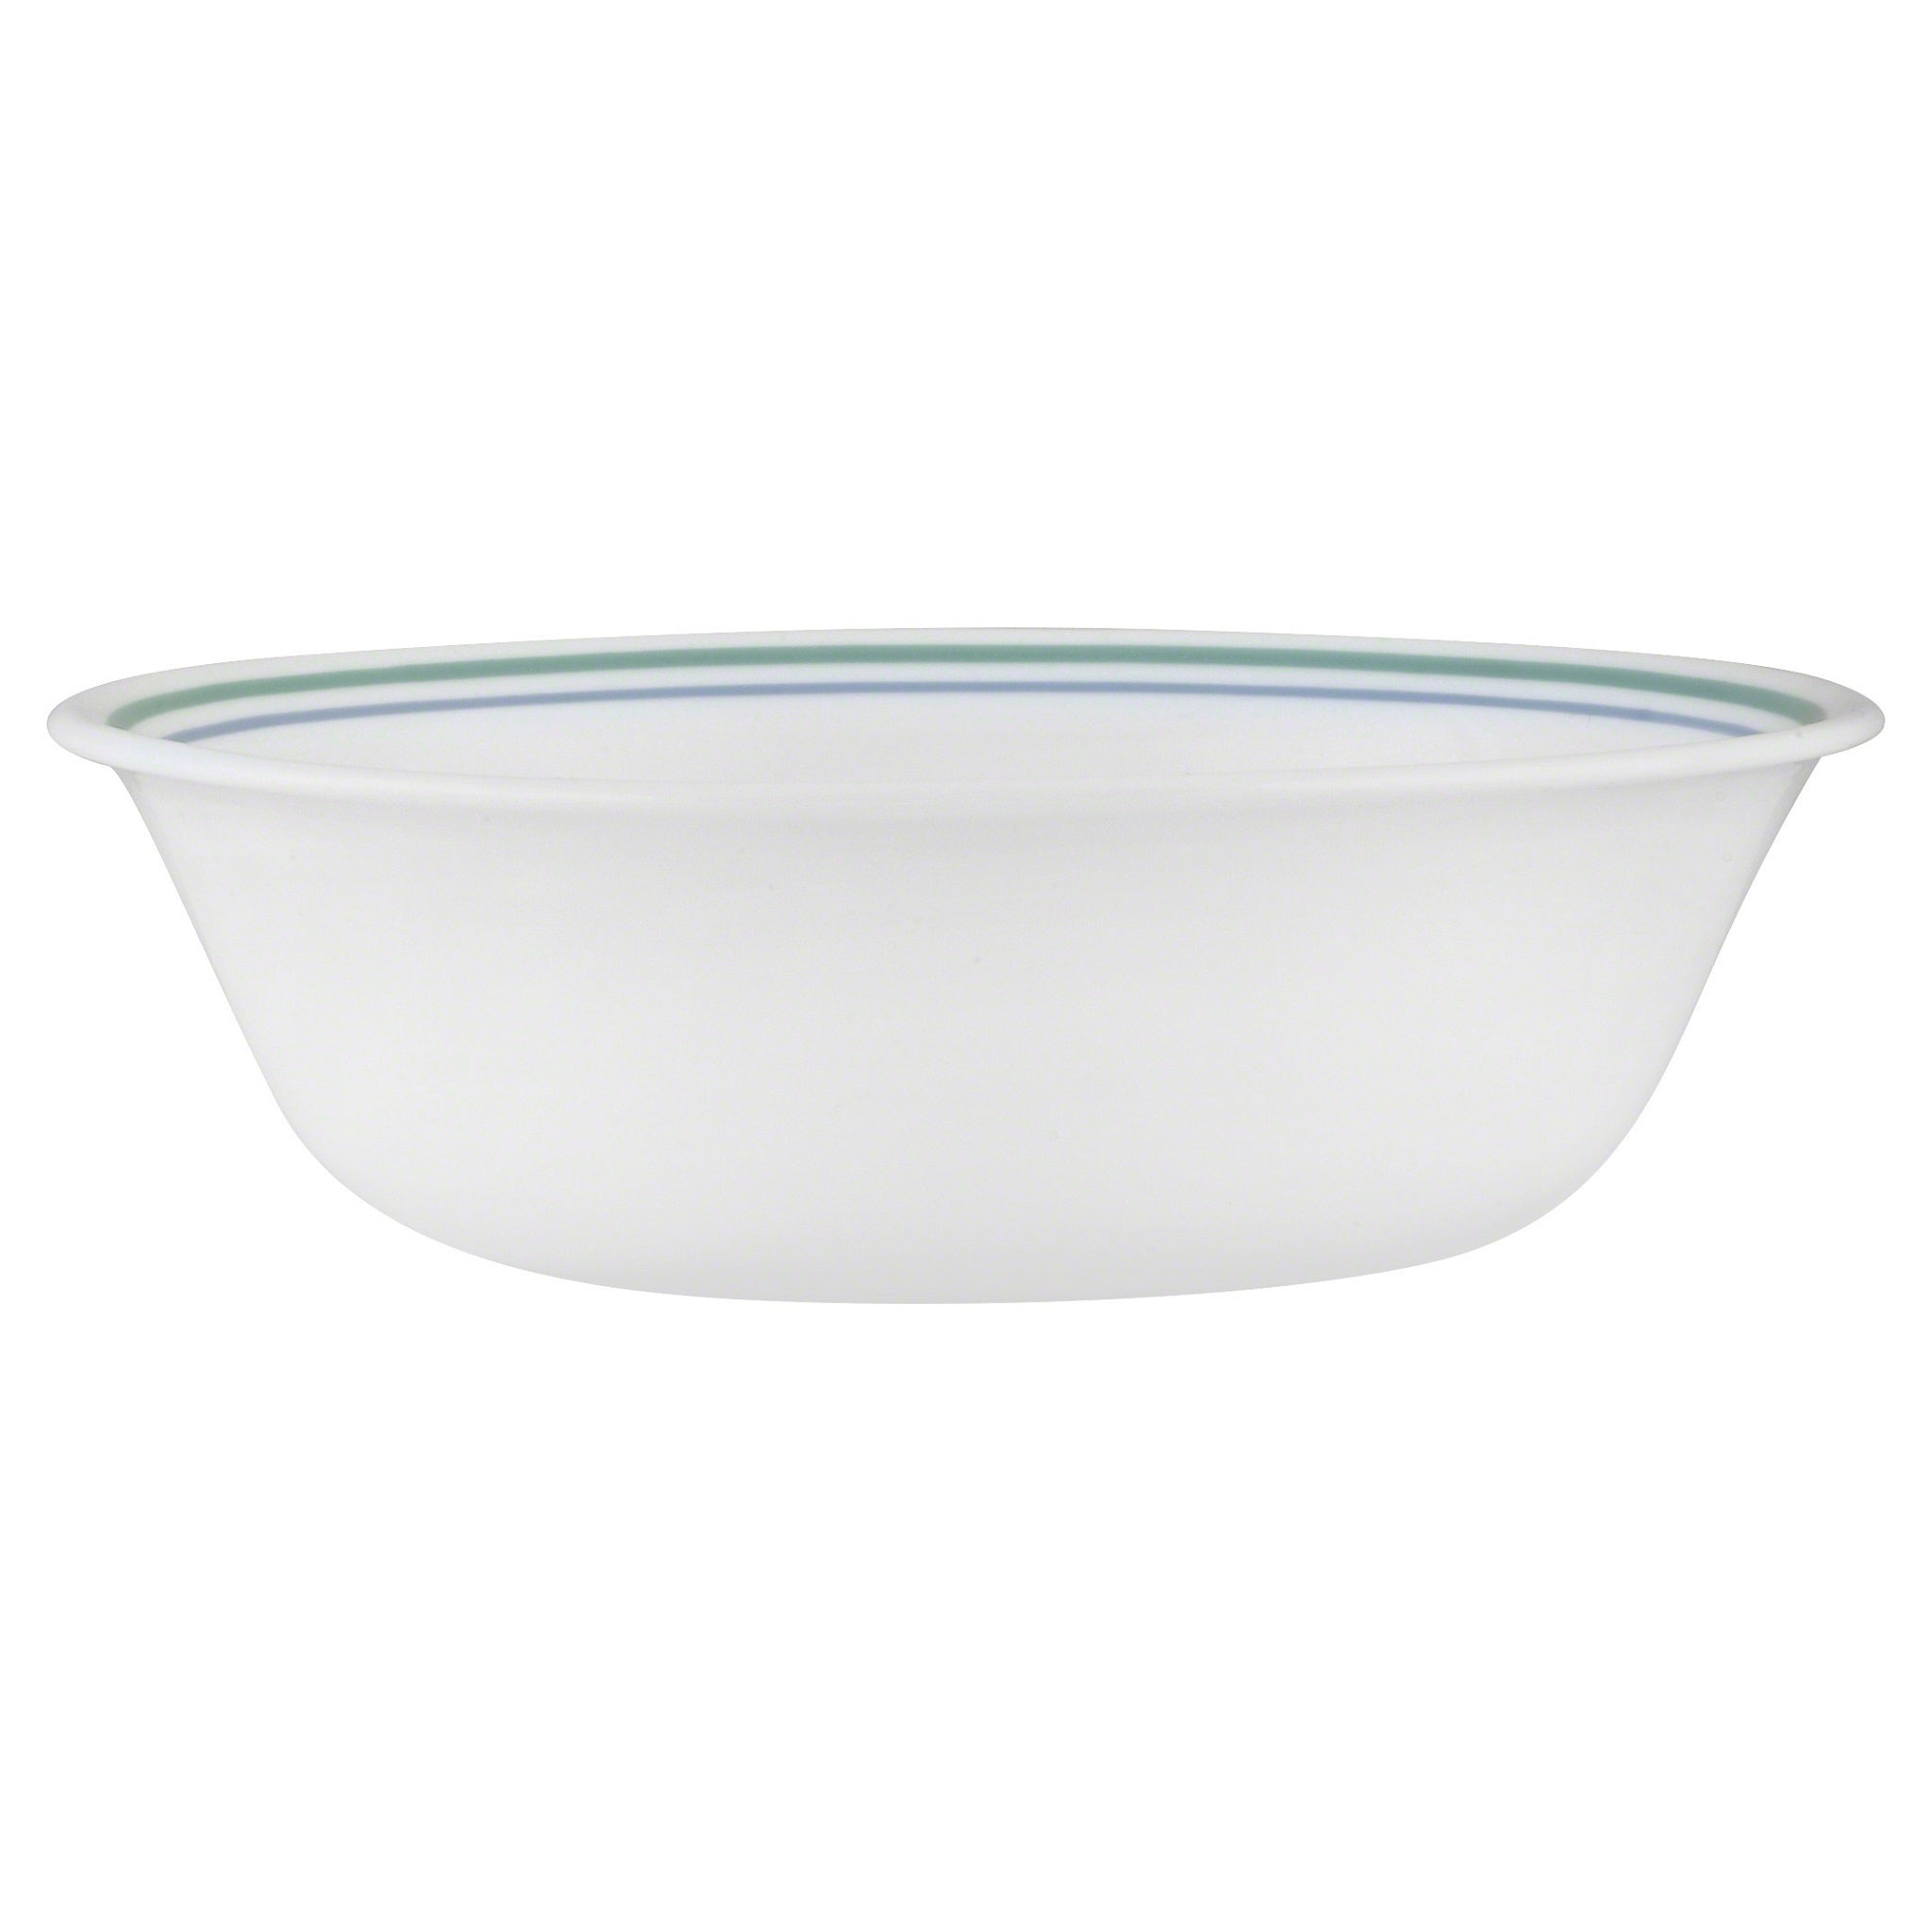 Corelle Classic Country Cottage 532mL Soup Cereal Bowl-6018489